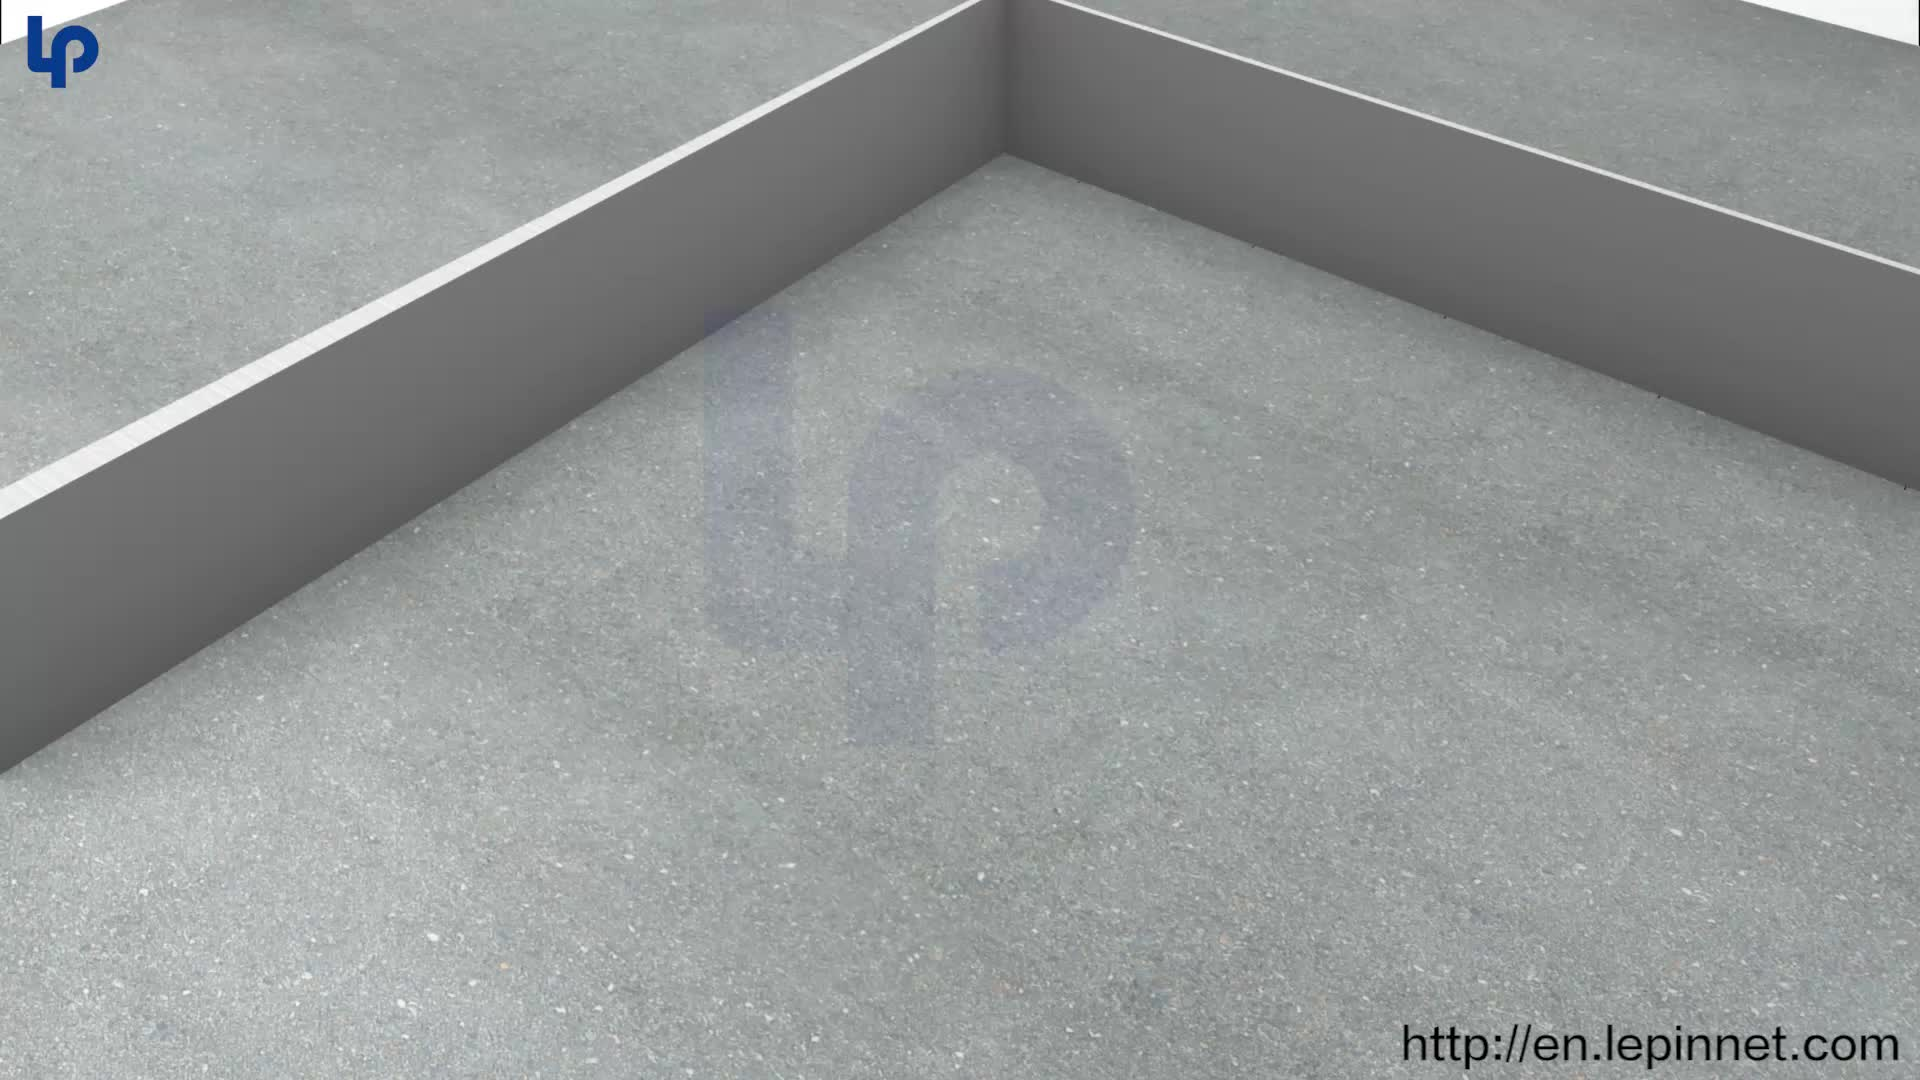 ningbo lepin factory fireproof calcium sulphata raised access floor HPL  plastic PVC on top access floor for office server room